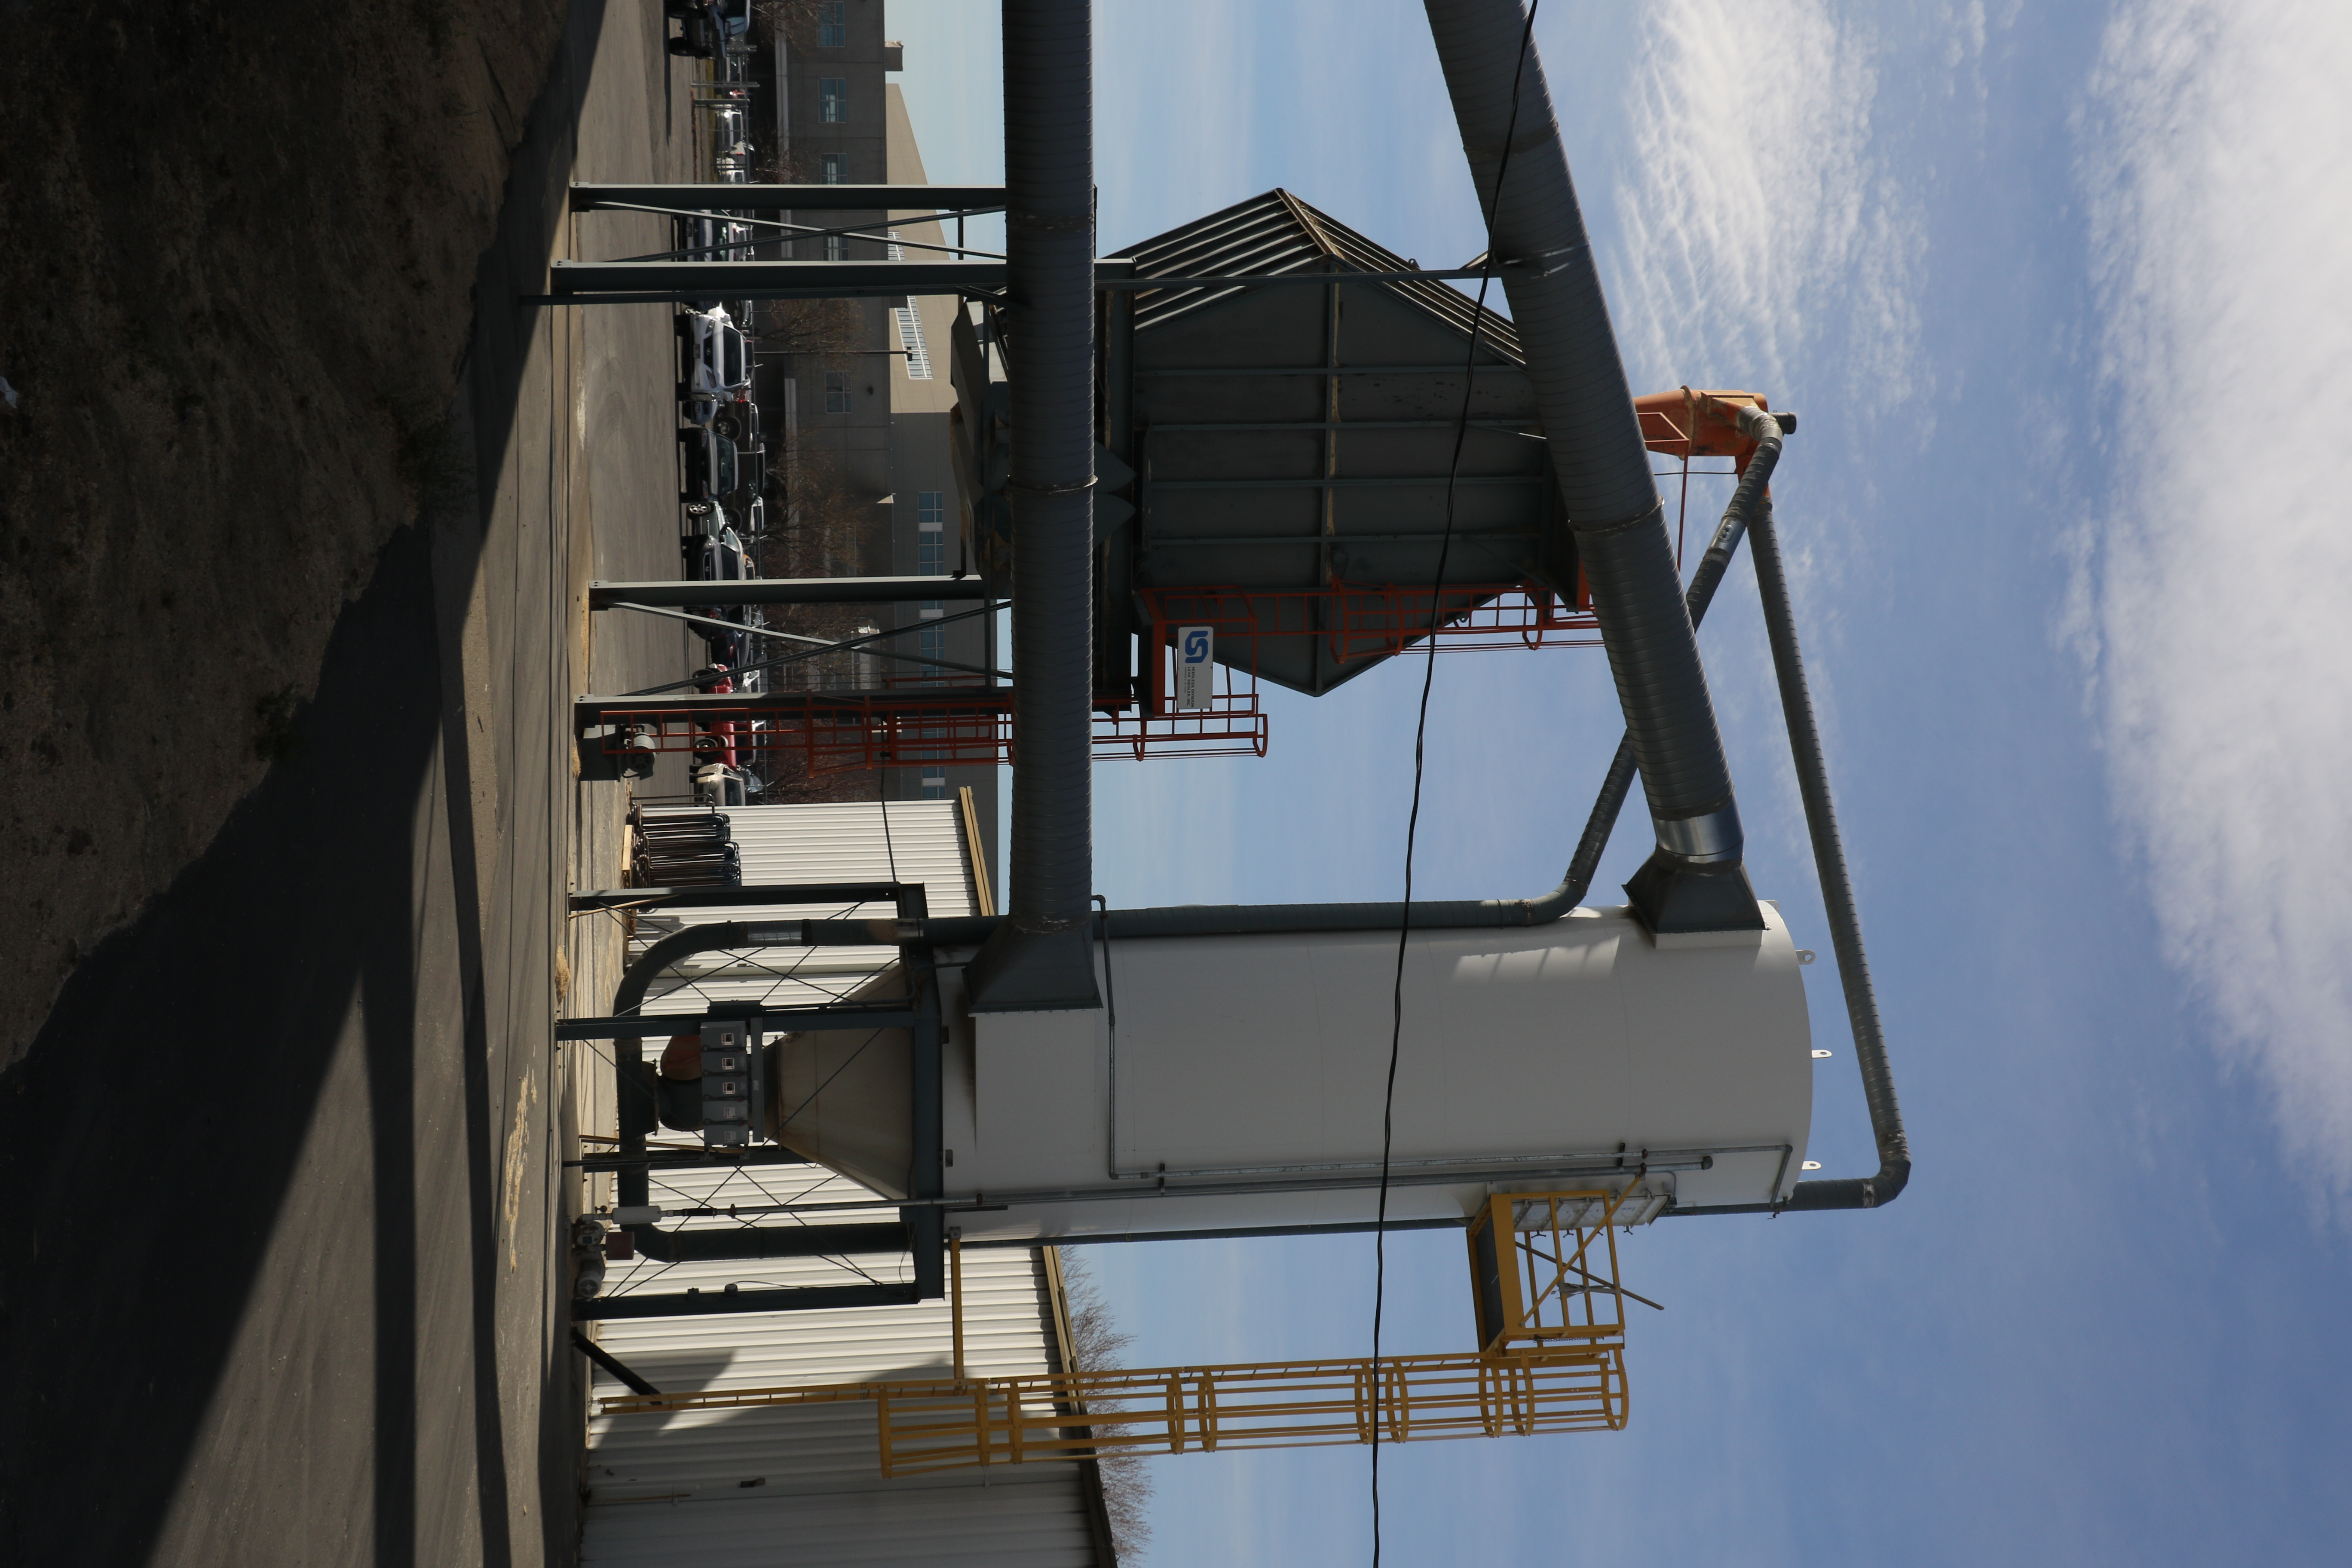 A silo on the property of Deseret Manufacturing facility.